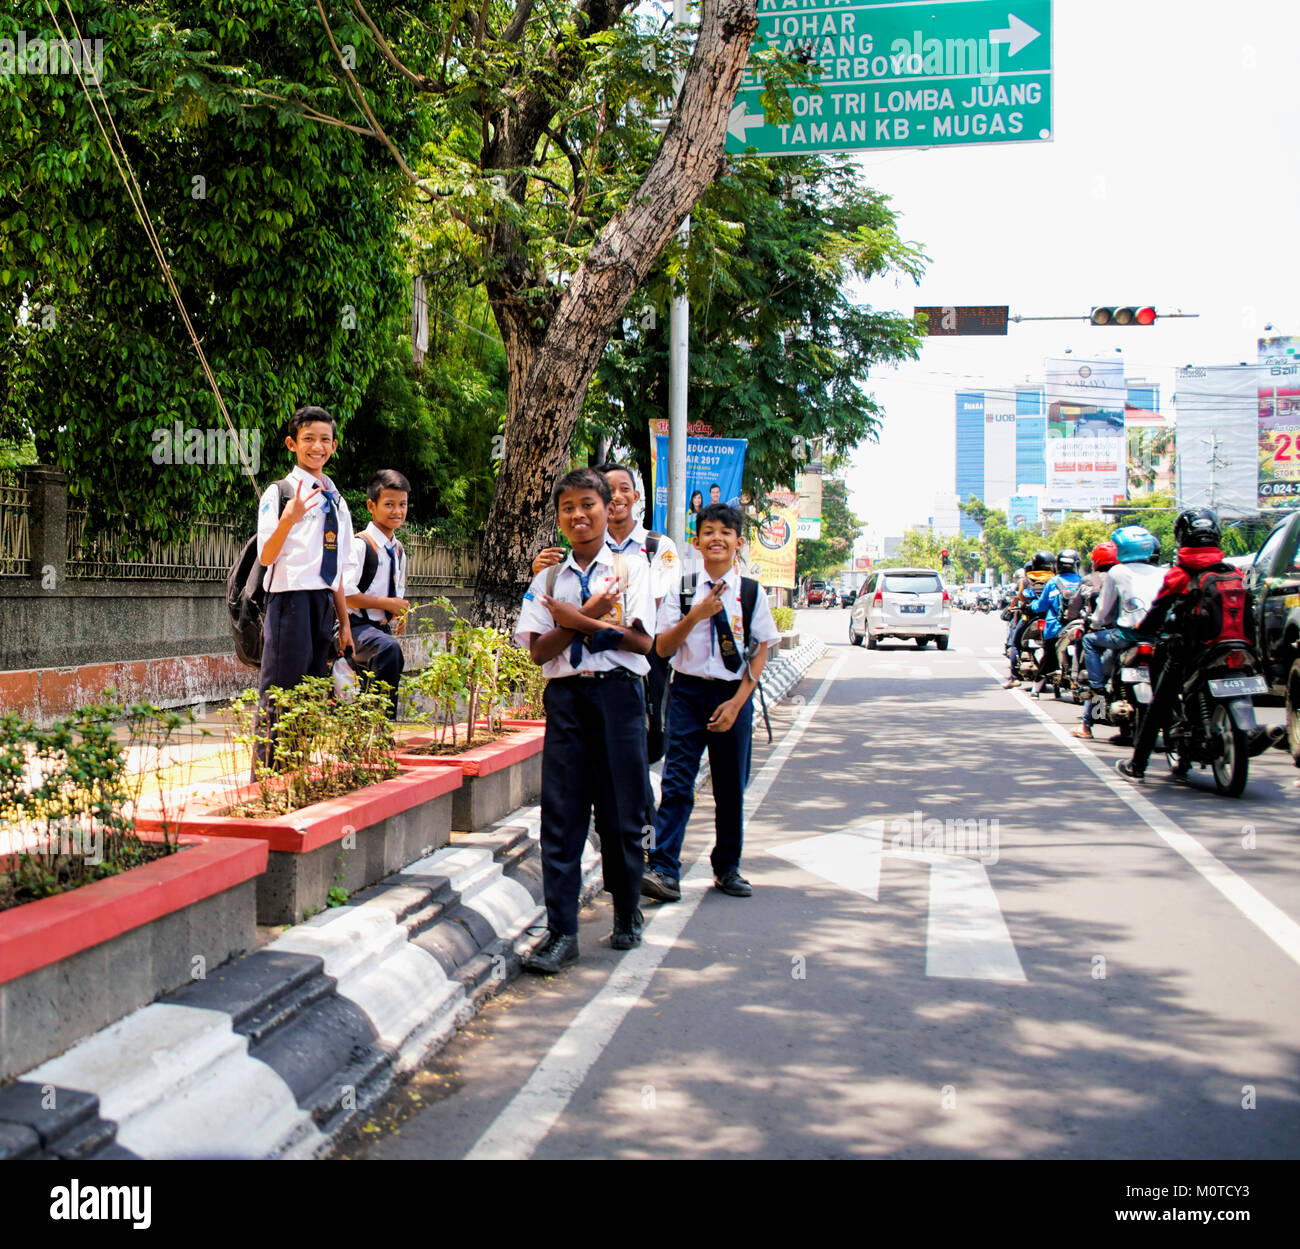 Javanese school boys laugh and smile as they walk along the busy street. Samarang, Java, Indonesia - Stock Image